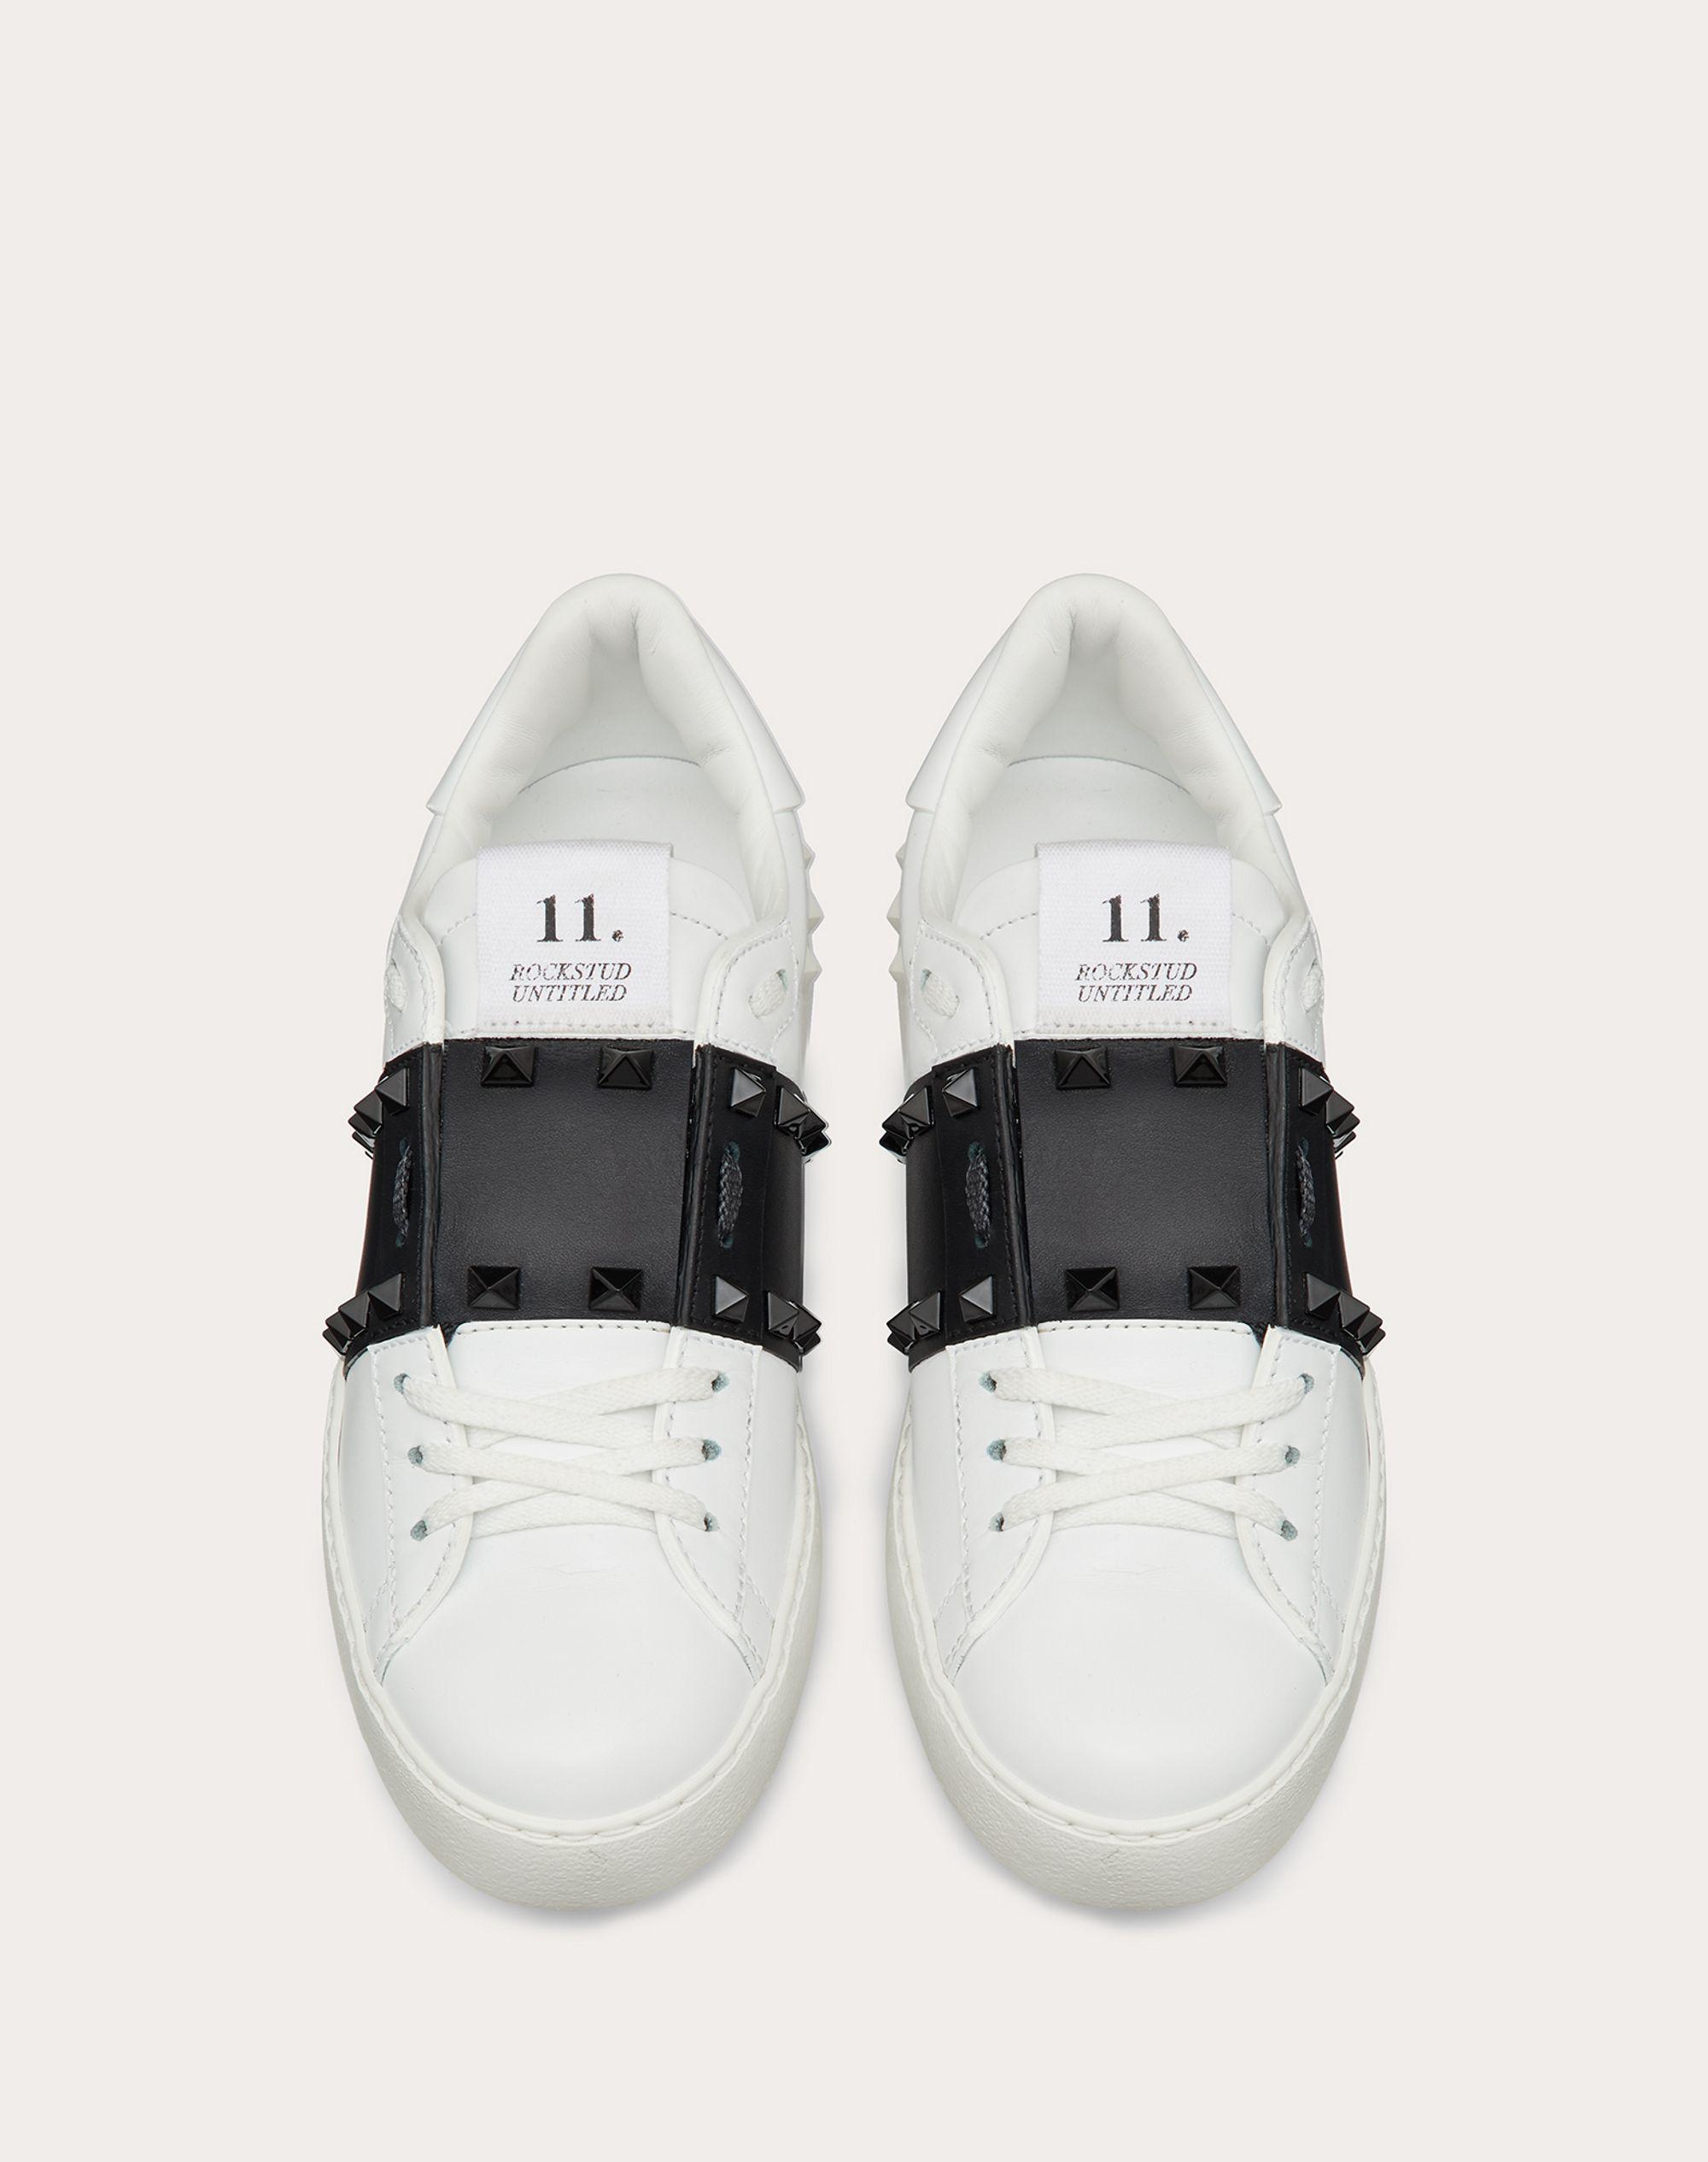 Rockstud Untitled Sneaker in Calfskin Leather with Tonal Studs 3